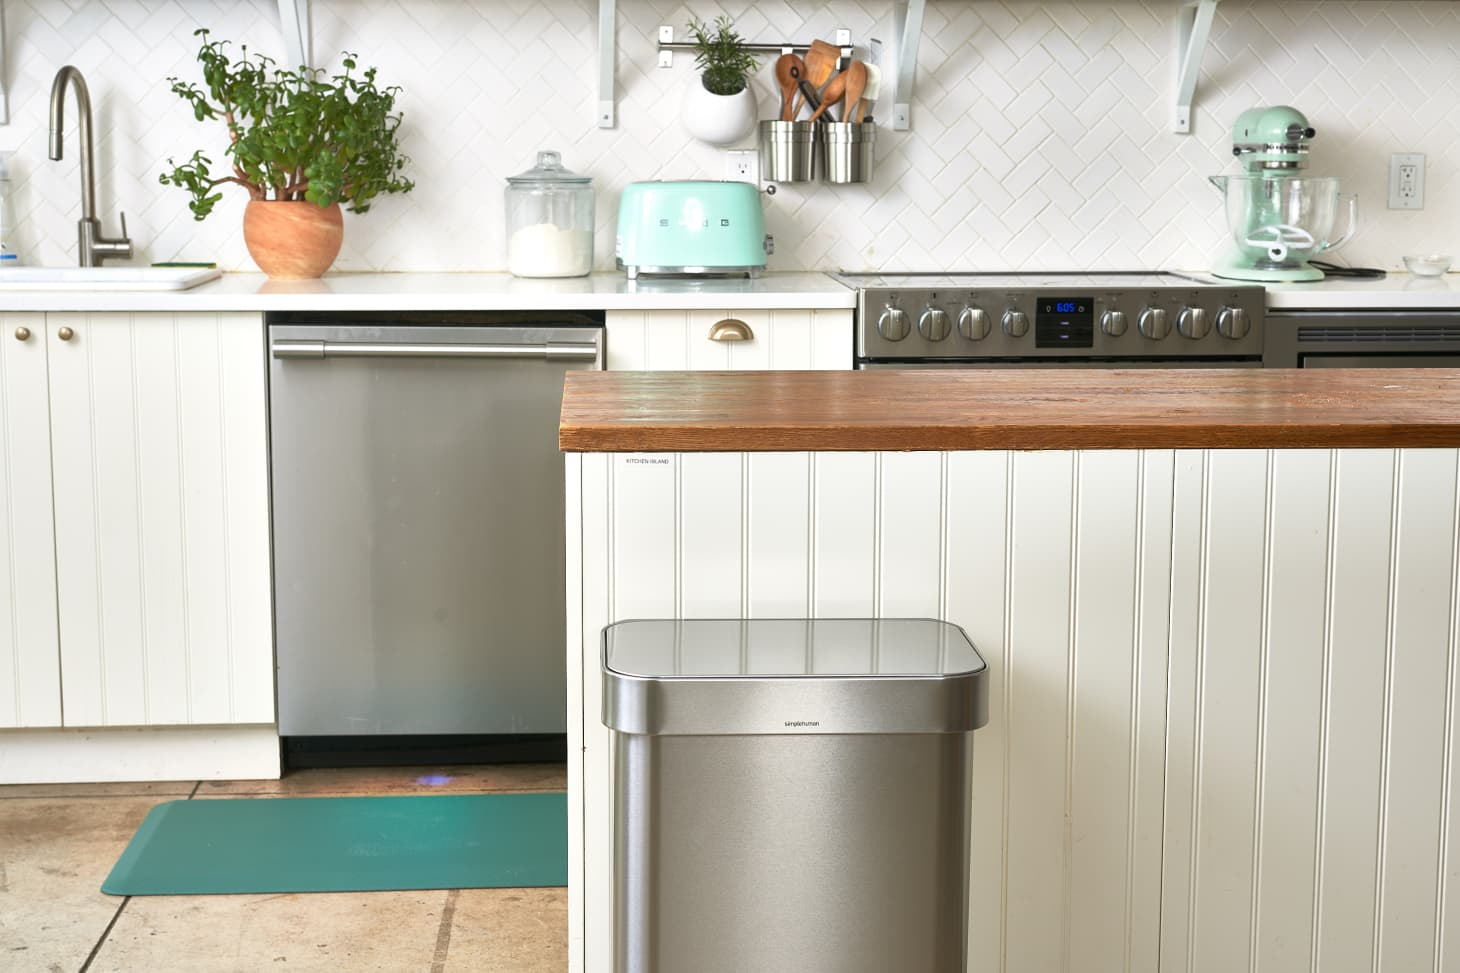 How to Clean the One Part of Your Kitchen That Hasn't Been Cleaned in a While